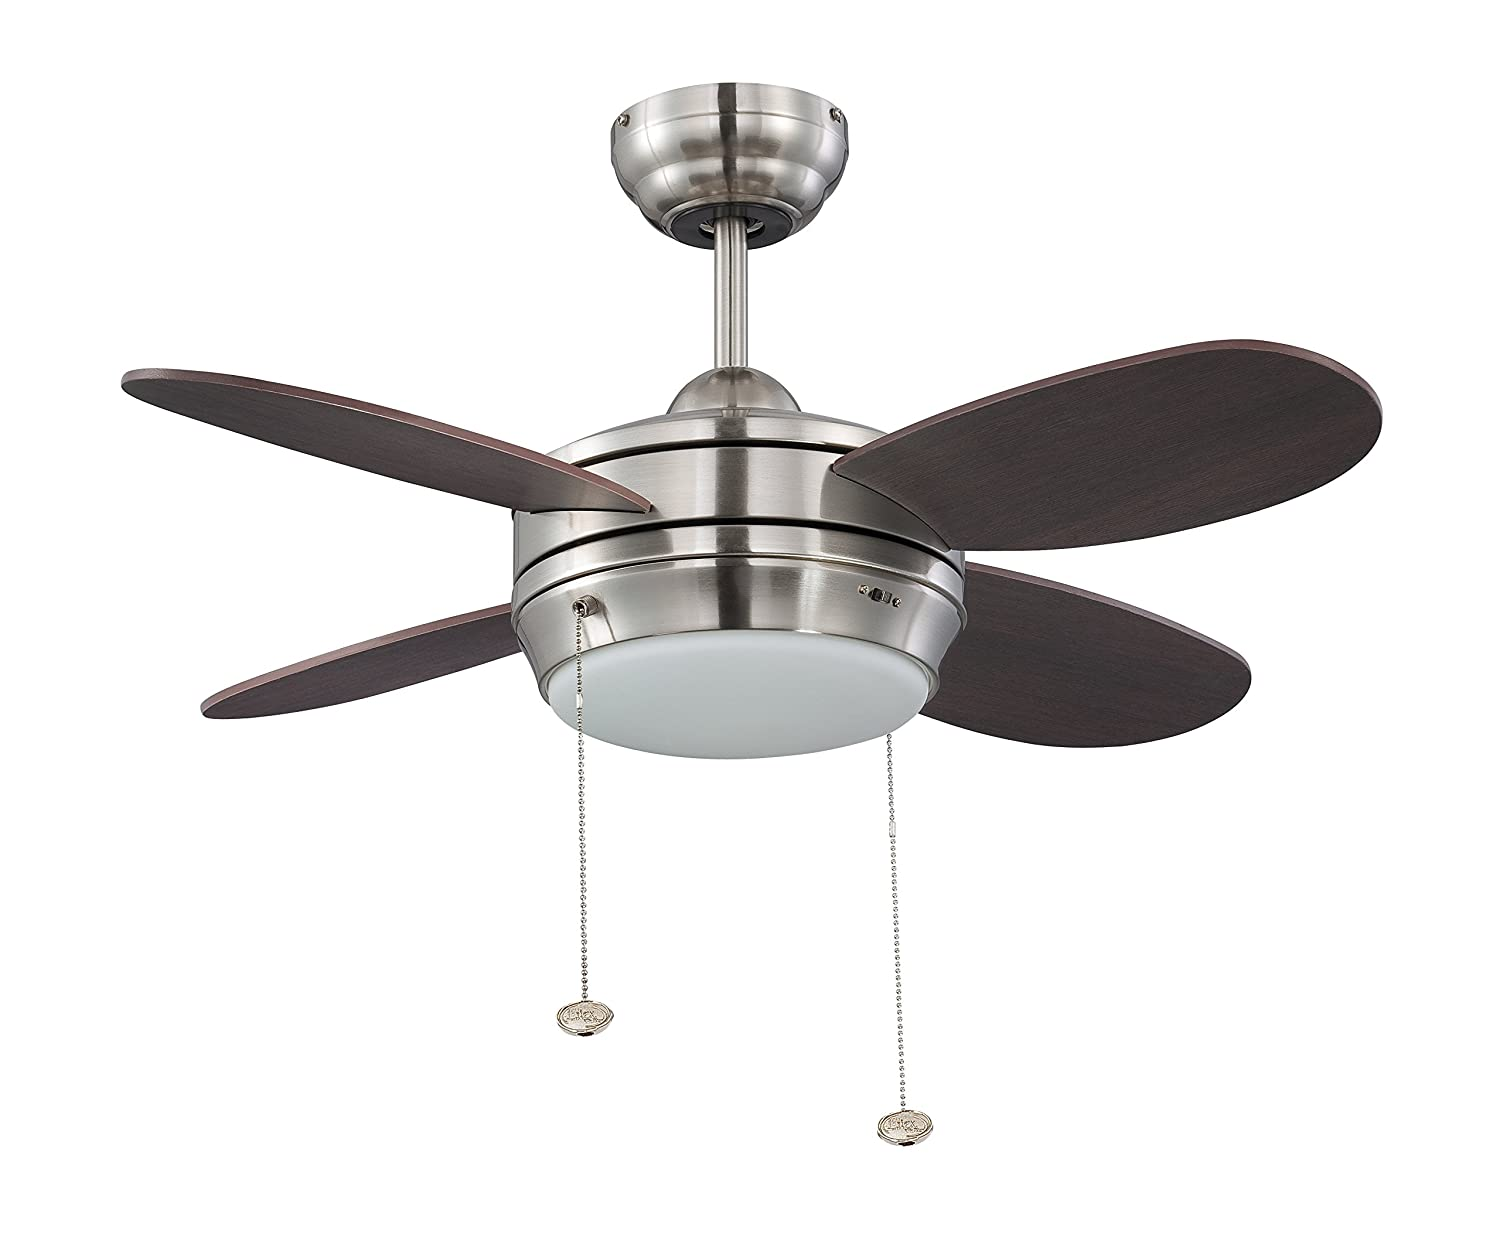 Litex e mlv36bnk4lk1 maksim collection 36 inch ceiling fan with five litex e mlv36bnk4lk1 maksim collection 36 inch ceiling fan with five wench wood blades and single light kit with opal frosted glass amazon aloadofball Image collections